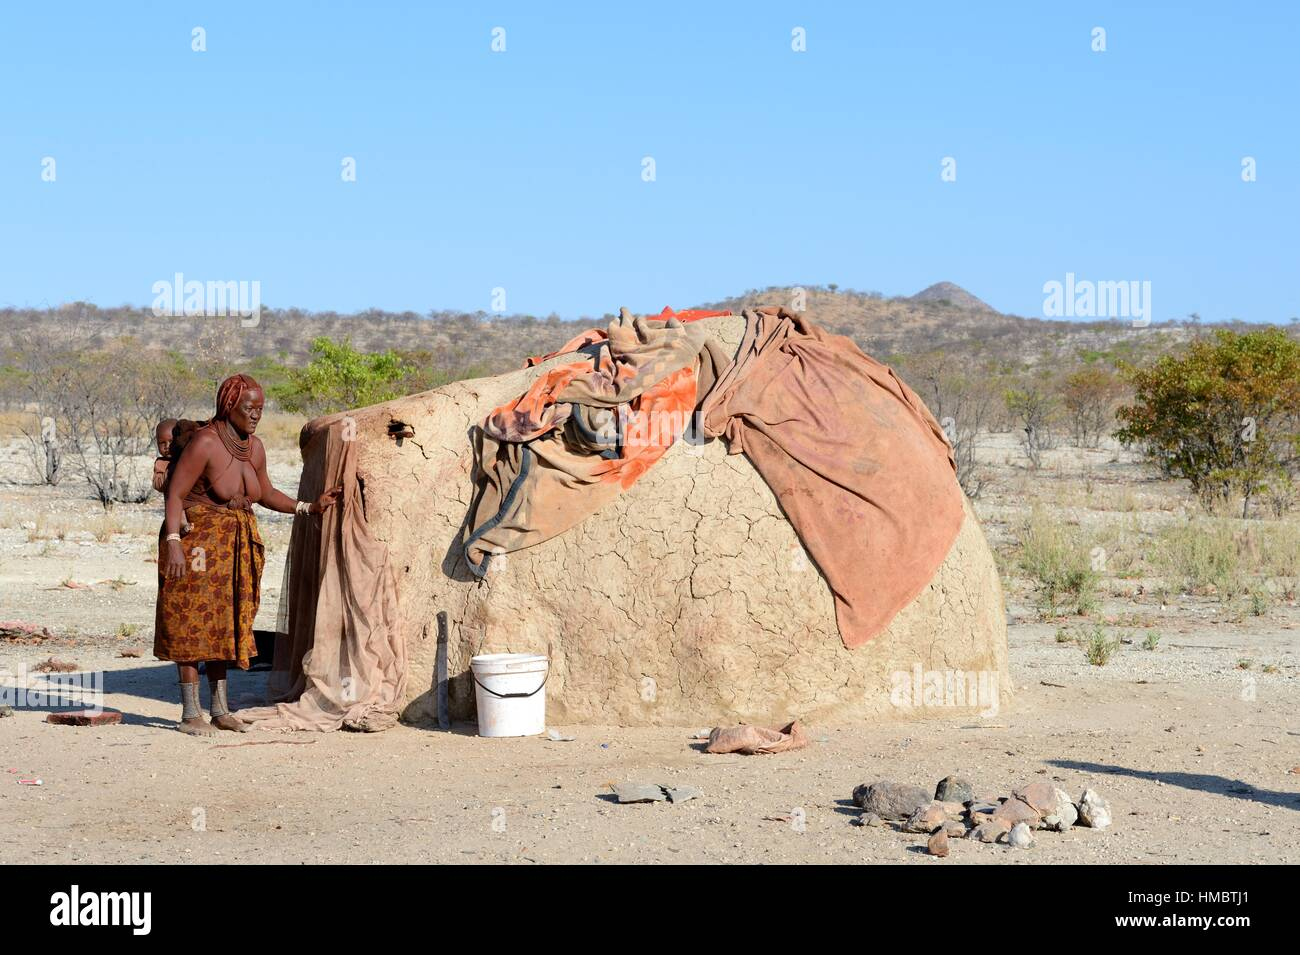 Himba woman beside traditional mud hut. Kaokoland, Namibia. - Stock Image